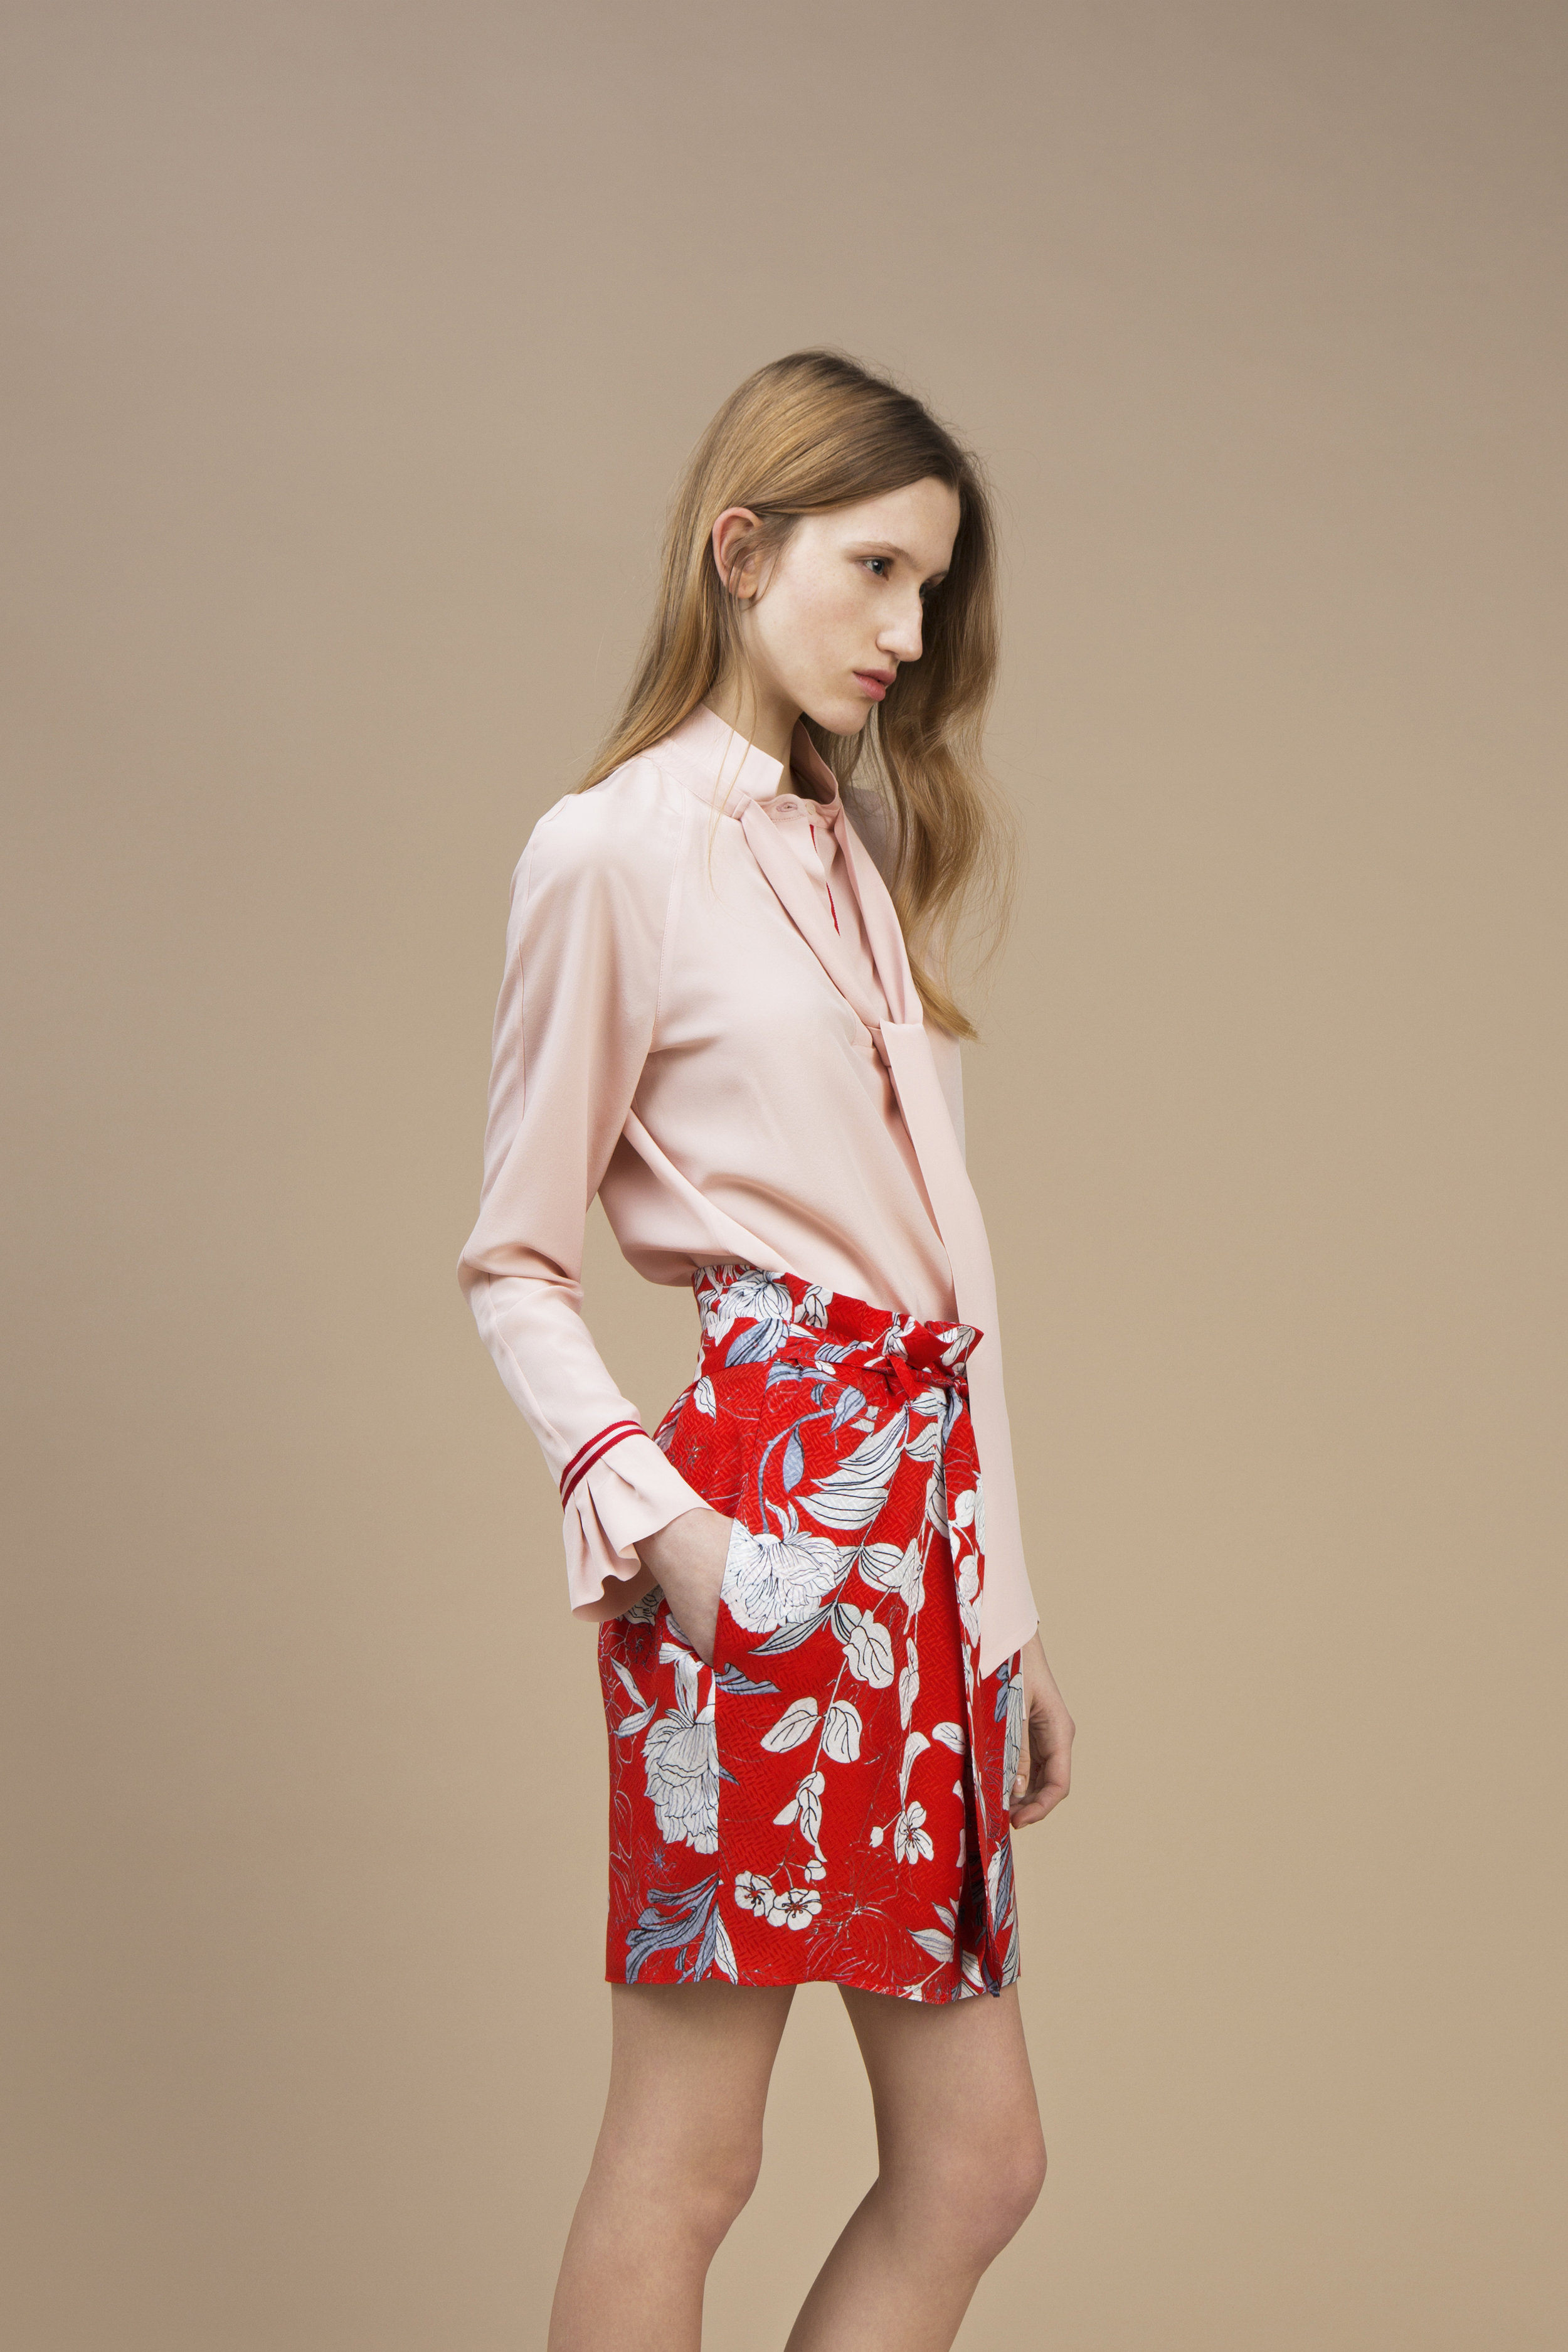 Crepe silk Ascot top — Soft Pink and Short waistband skirt in crepe silk - Red Carnation